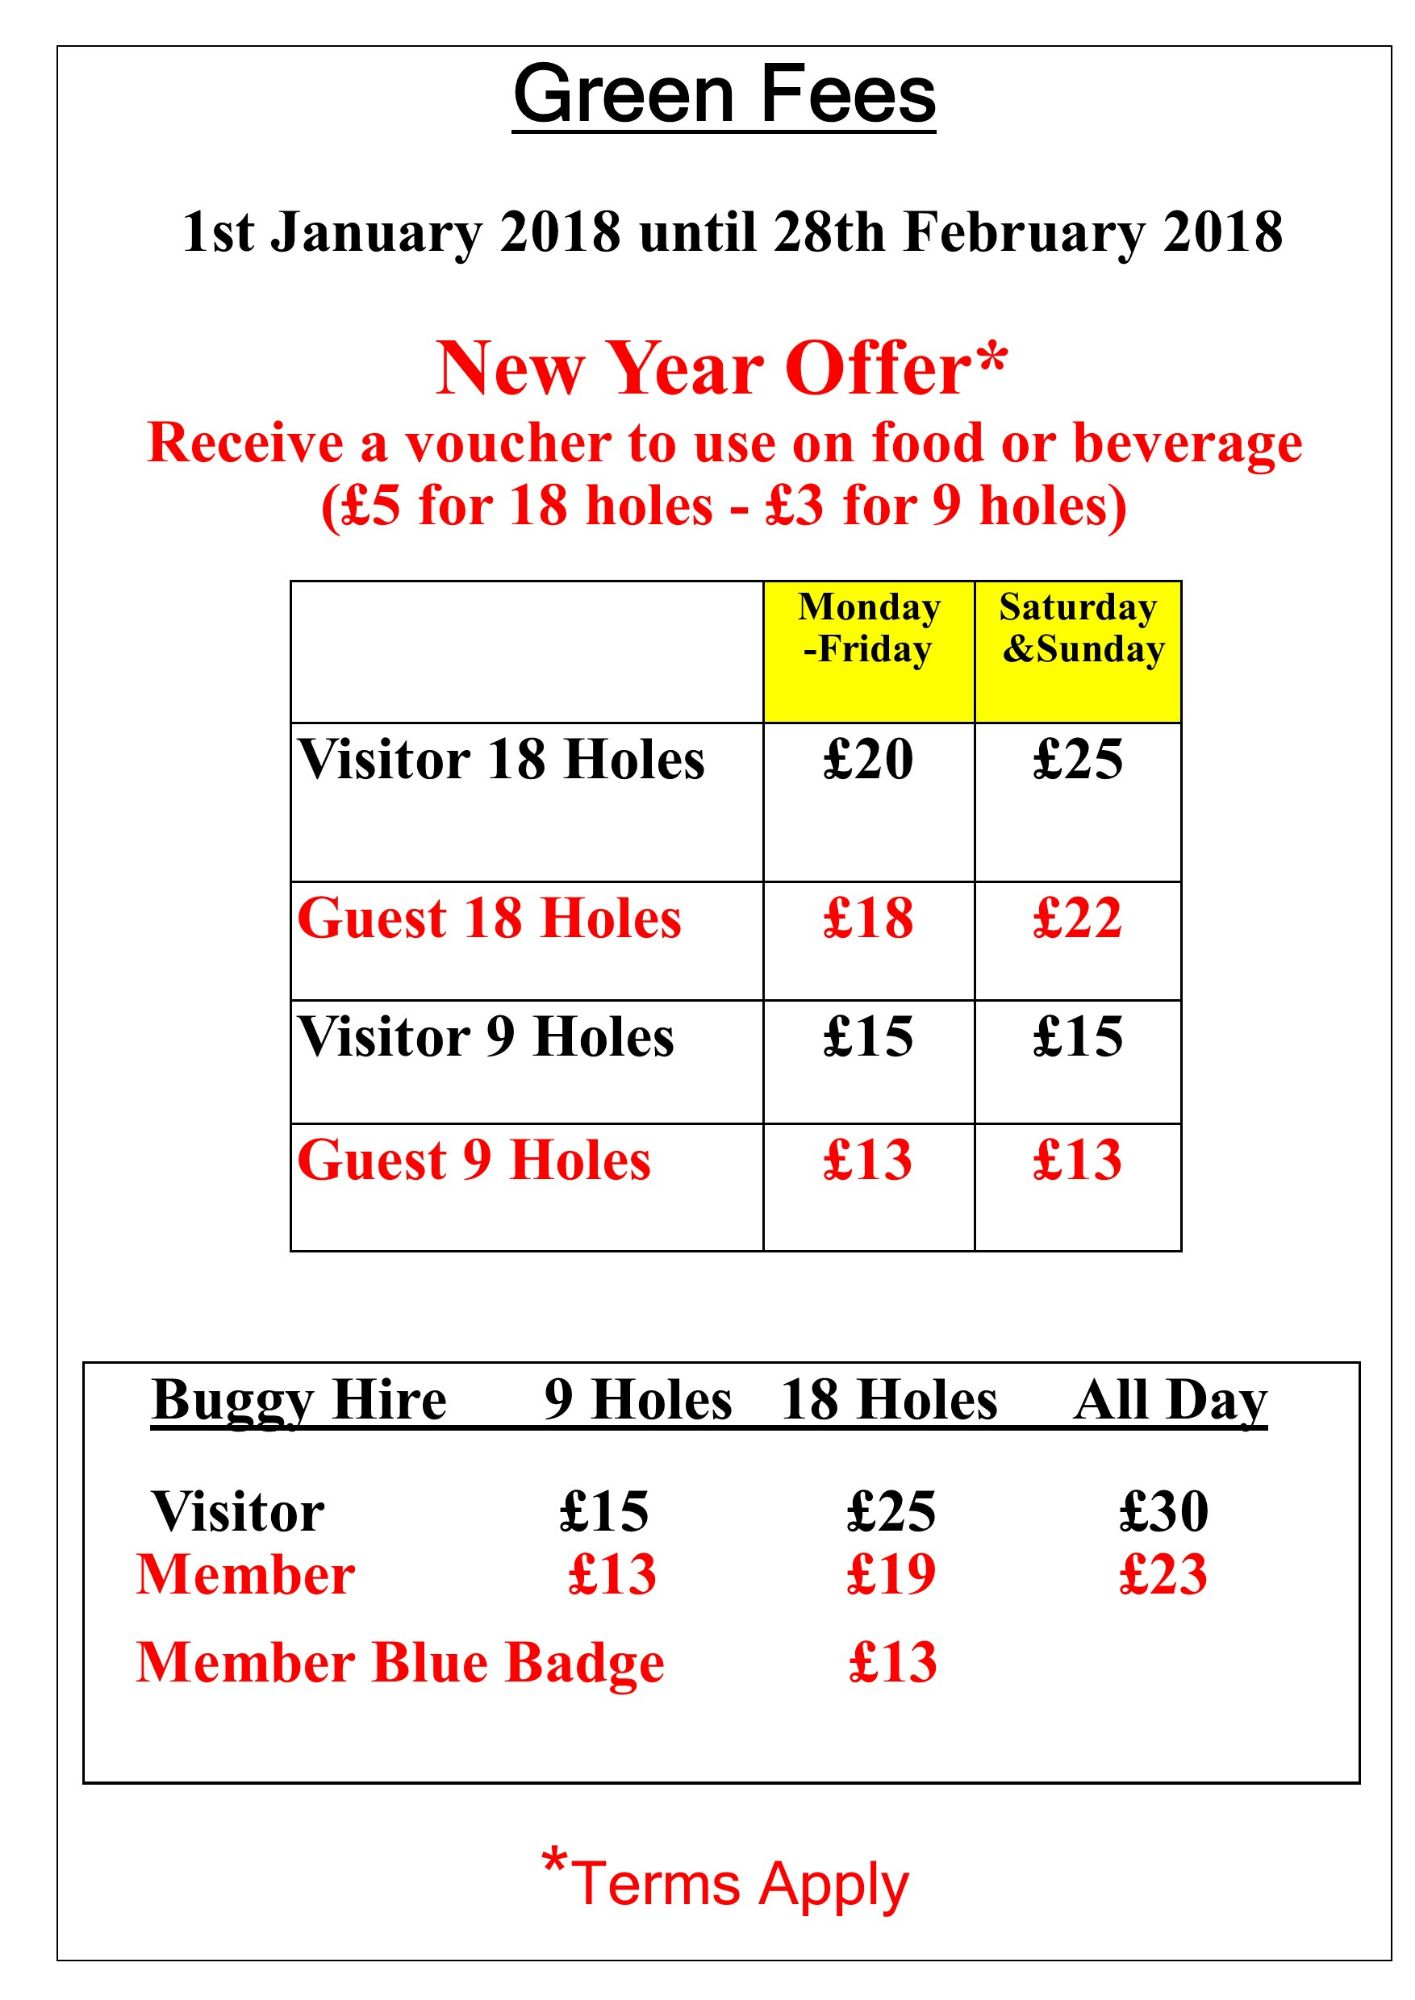 Green Fees New Year Offer 2018